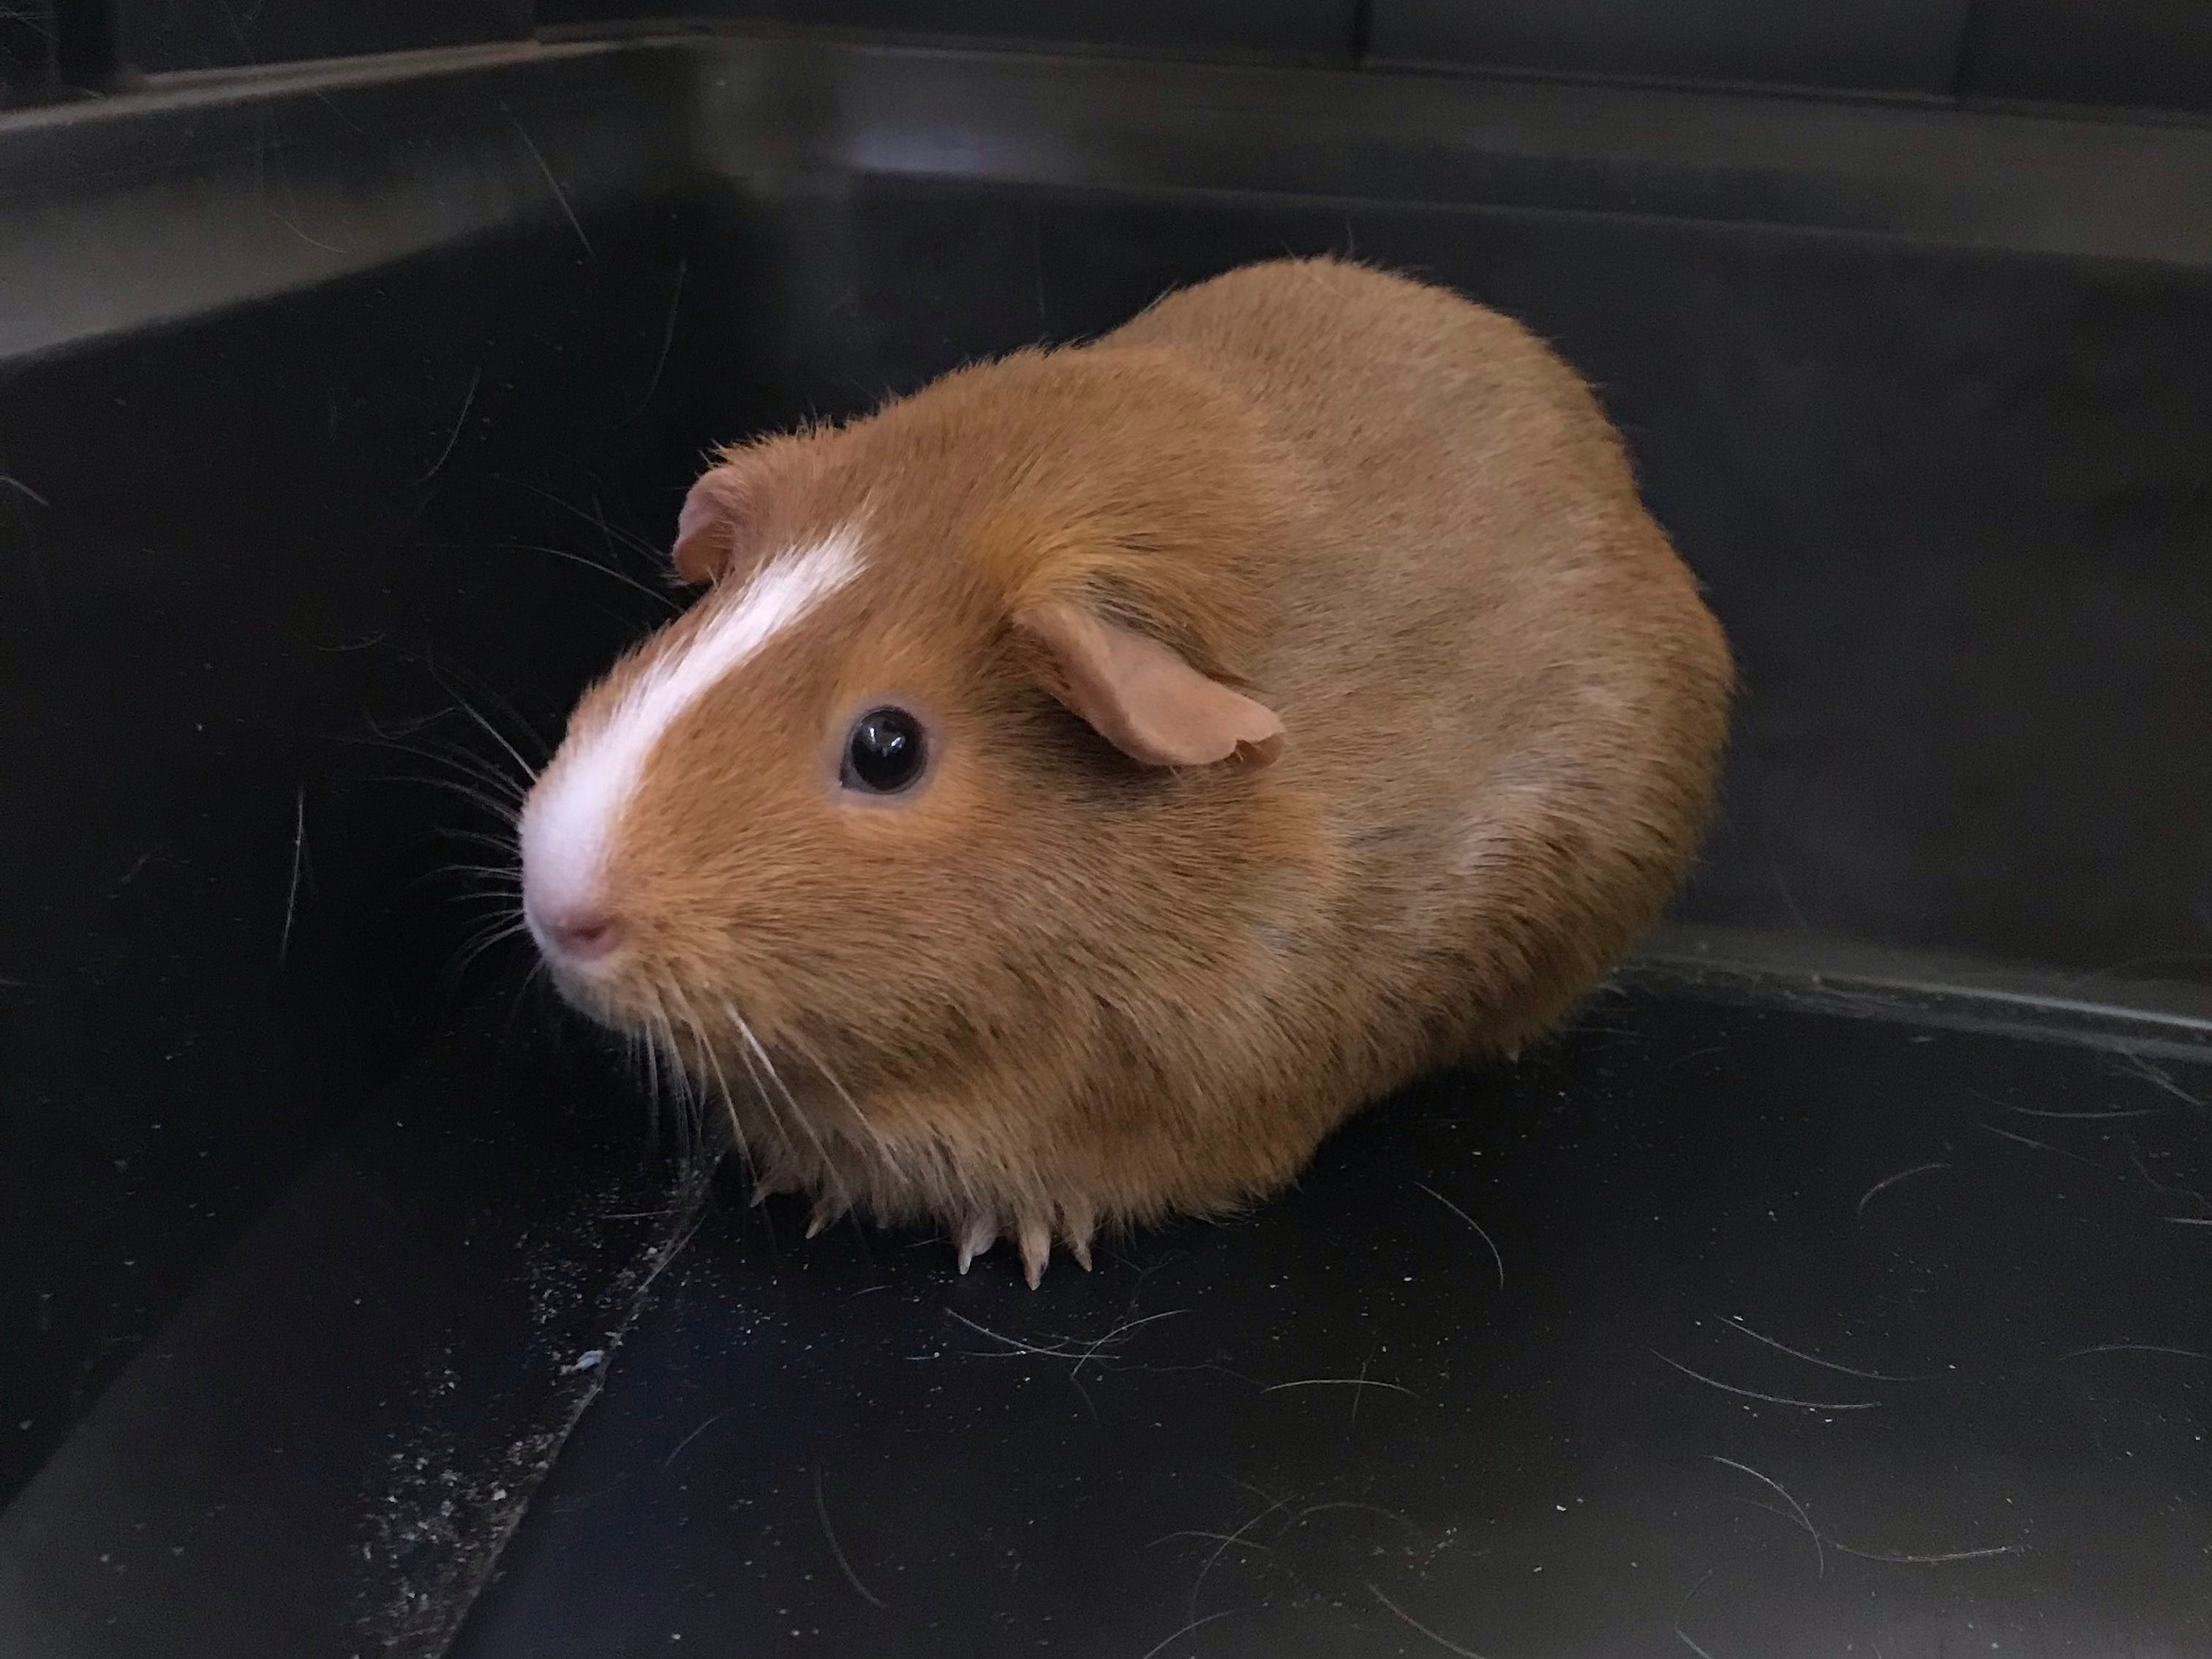 A 1-year-old Guinea Pig, Latte loves cilantro and carrots. She wants a home with her sister, Mocha.